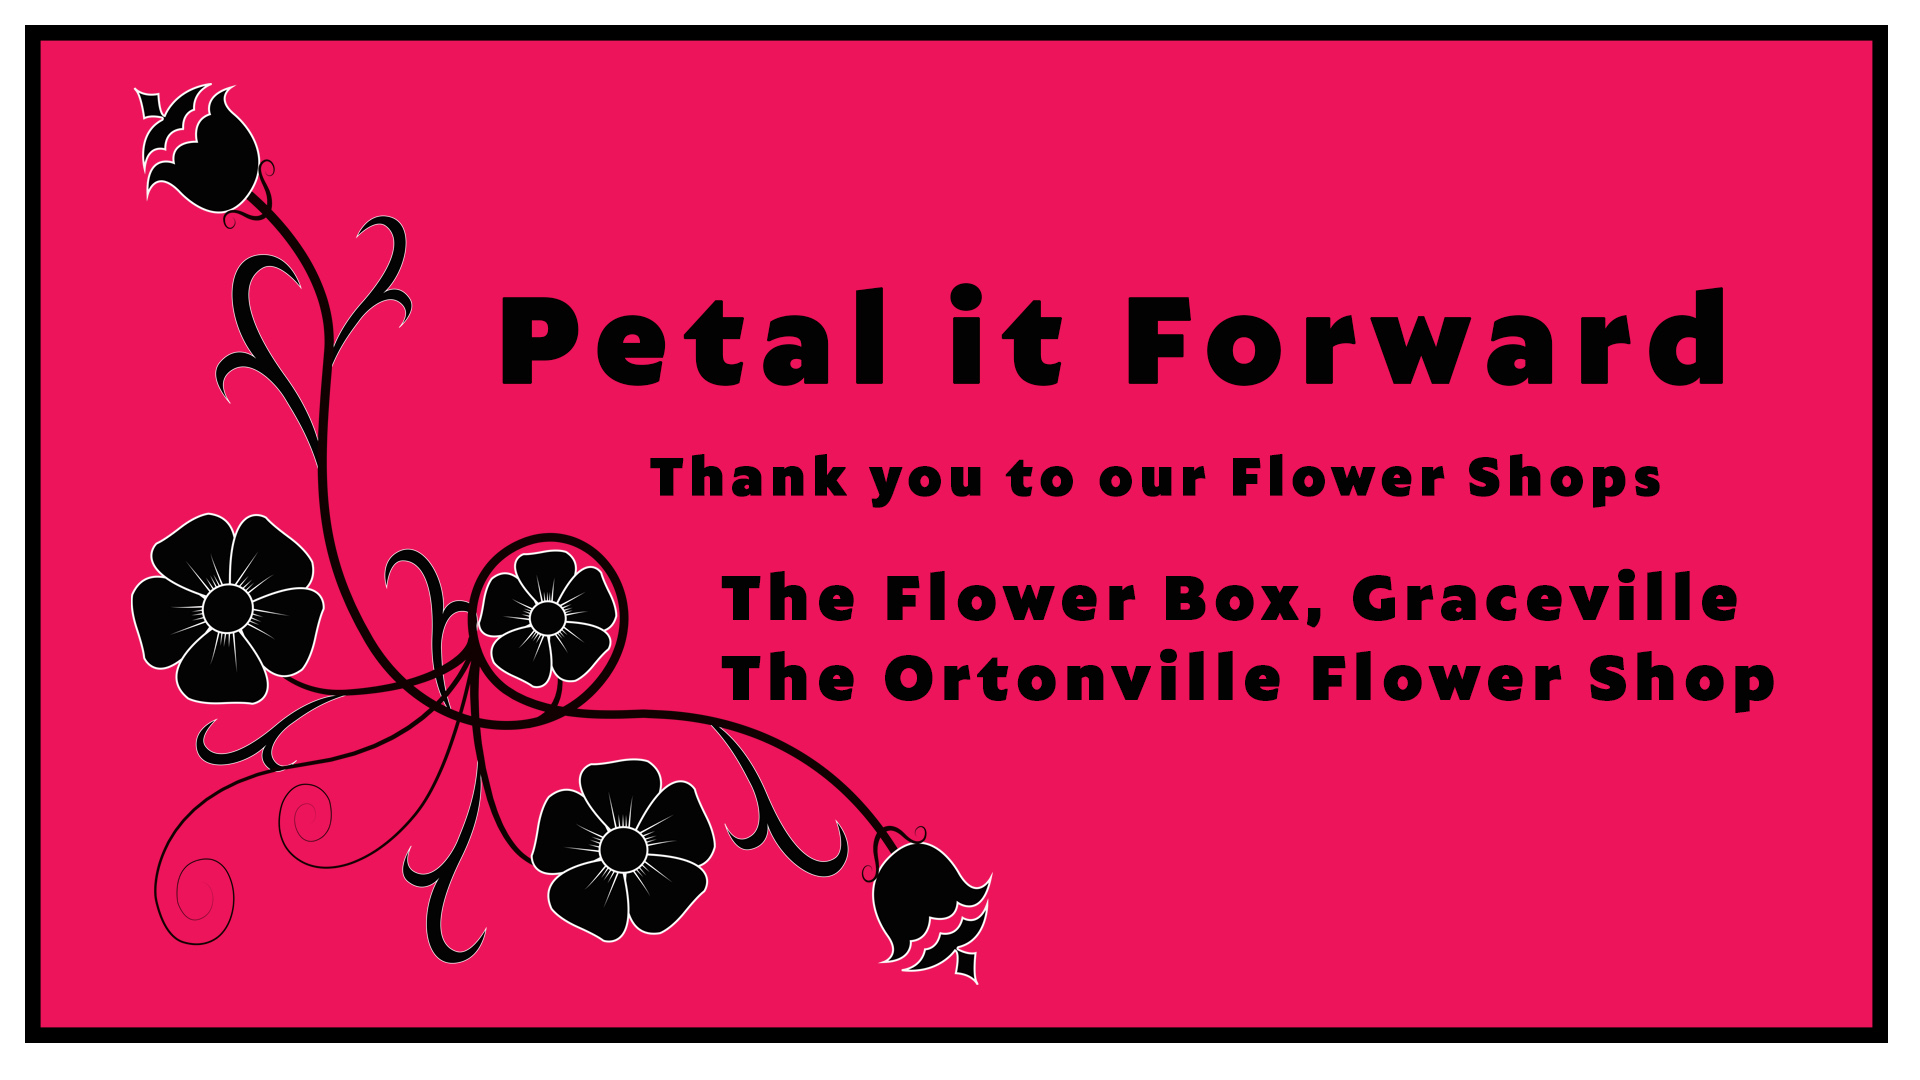 Petal it Forward, Here on the MNbump!